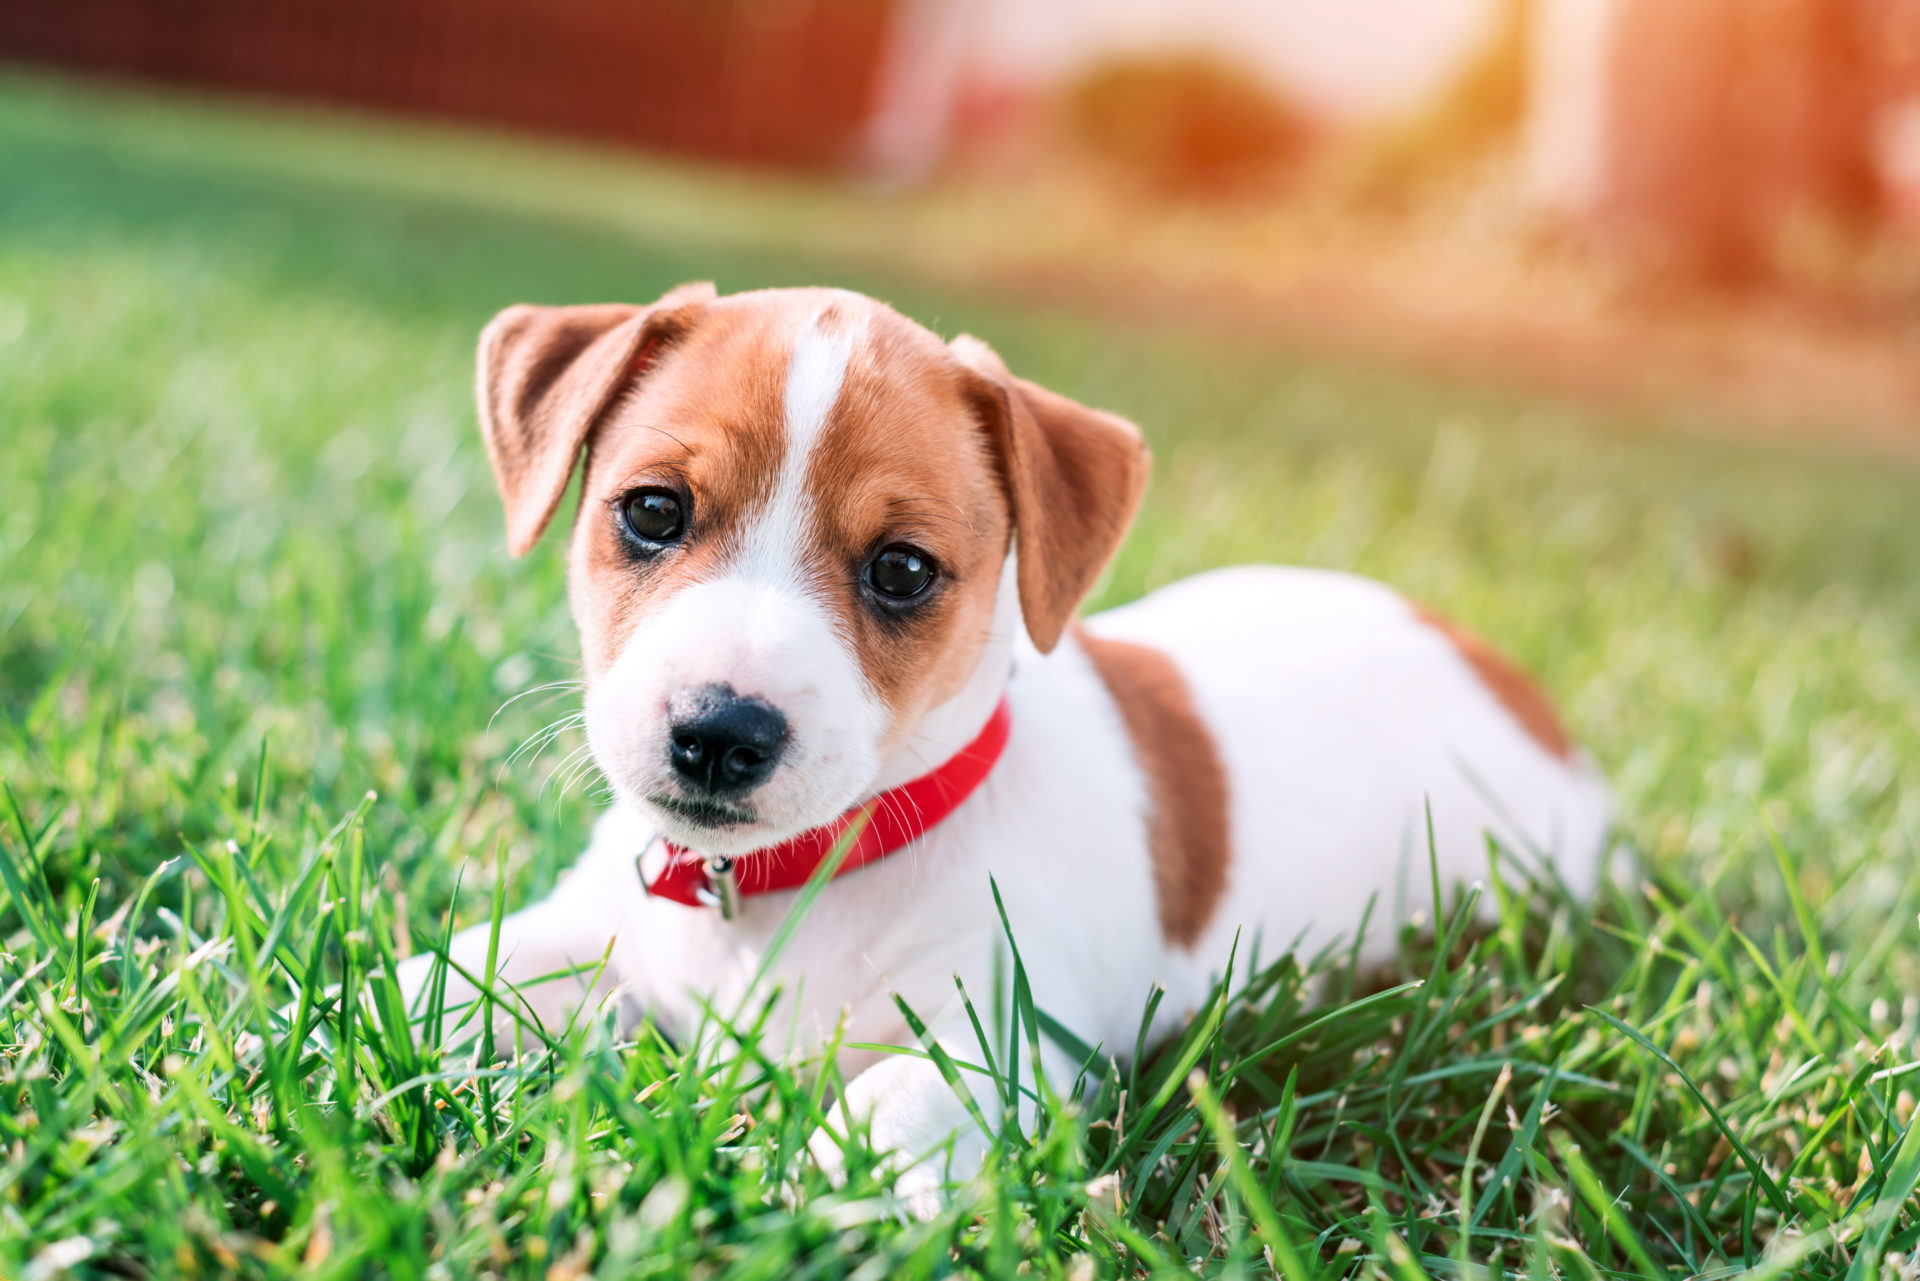 Jack Russel puppy playing outdoors